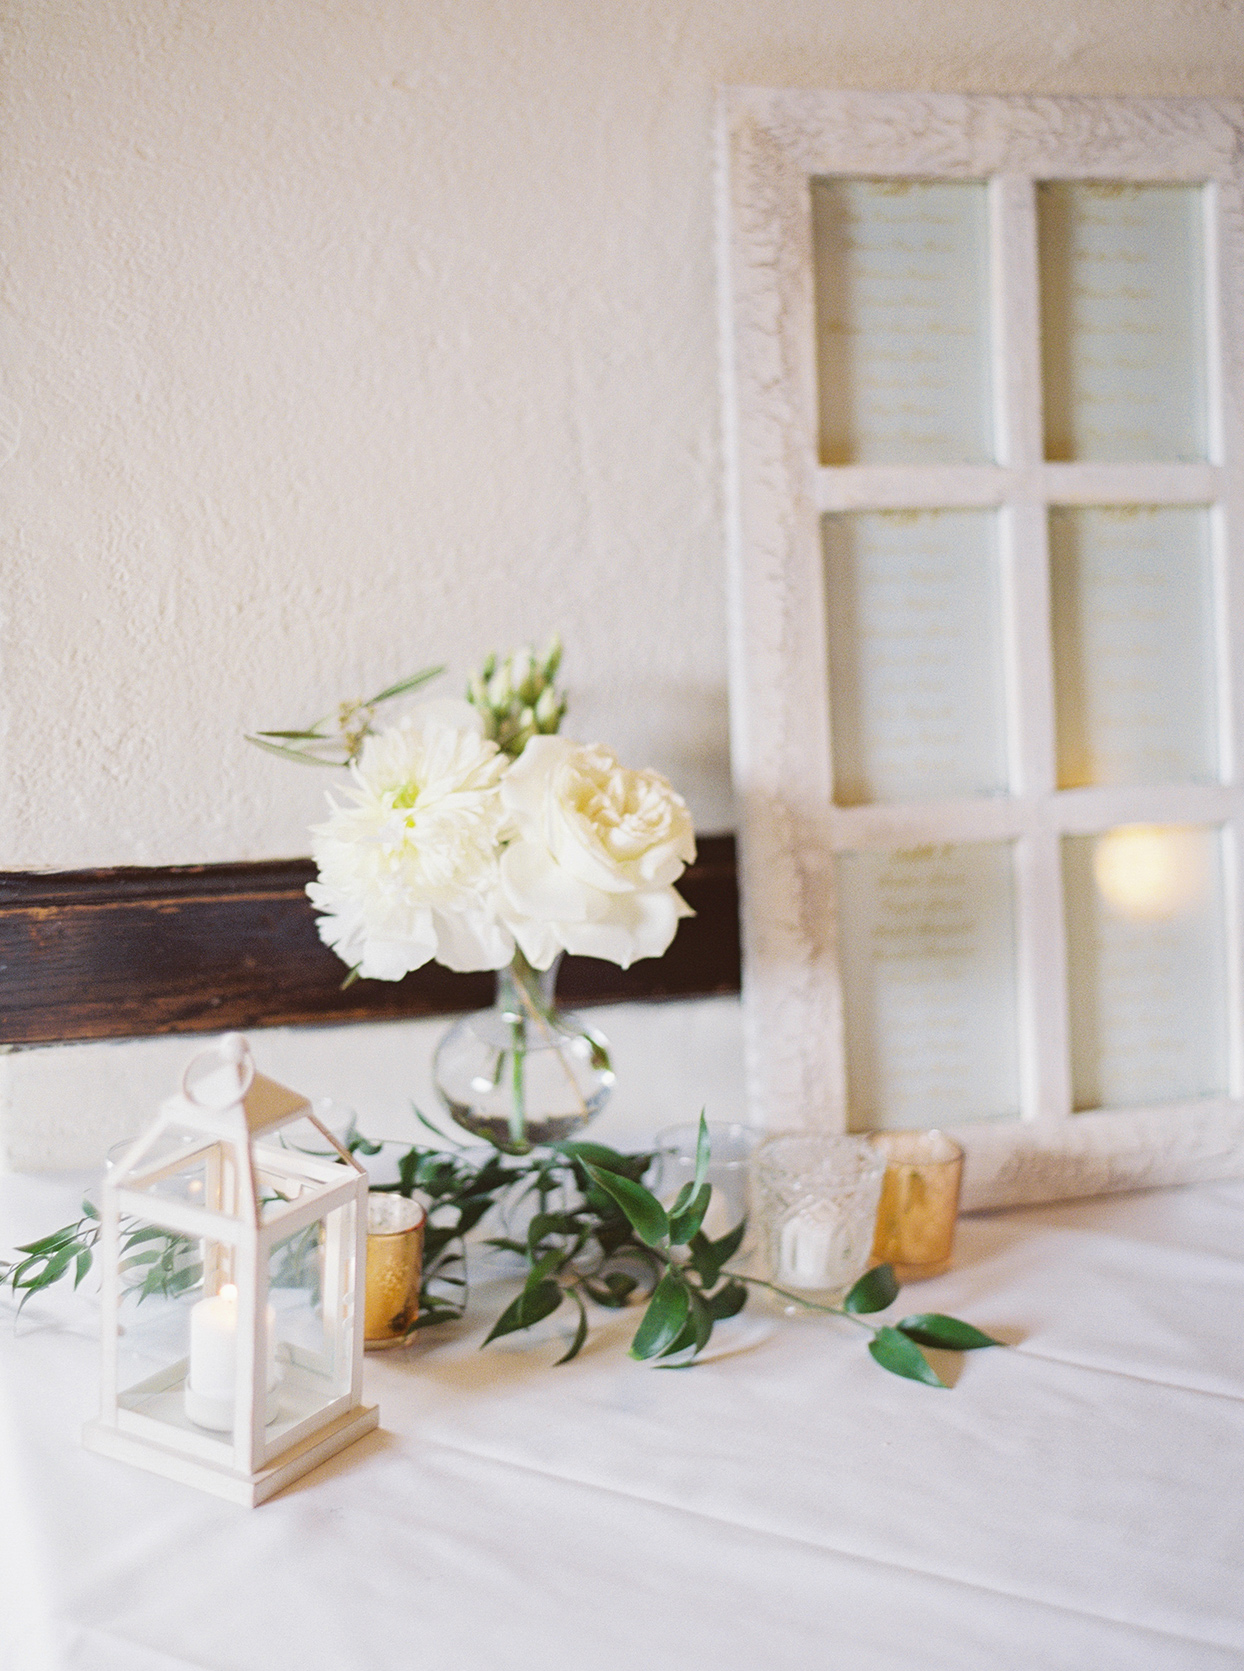 wedding seating chart in ornate frame on white table